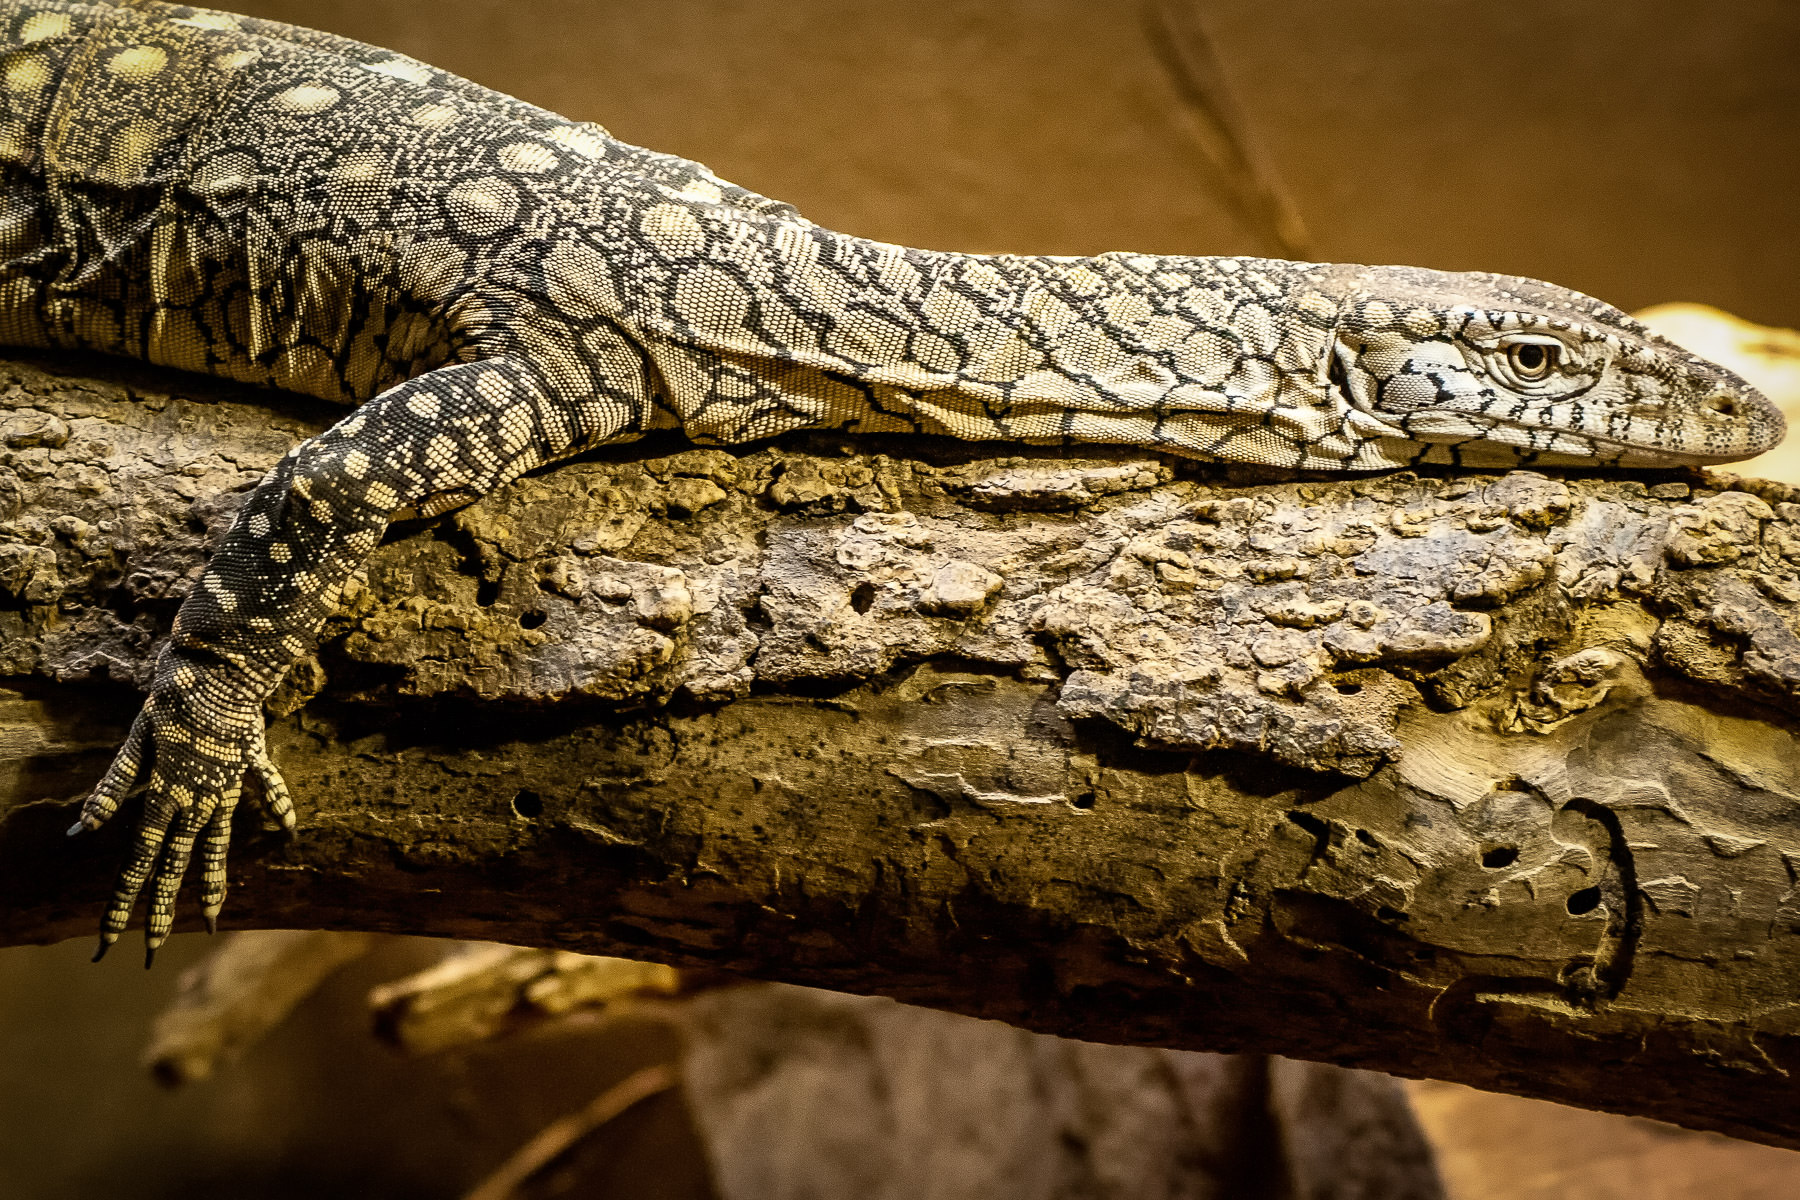 A perentie—the largest lizard native to Australia—lounges on a tree branch at the Dallas Zoo.